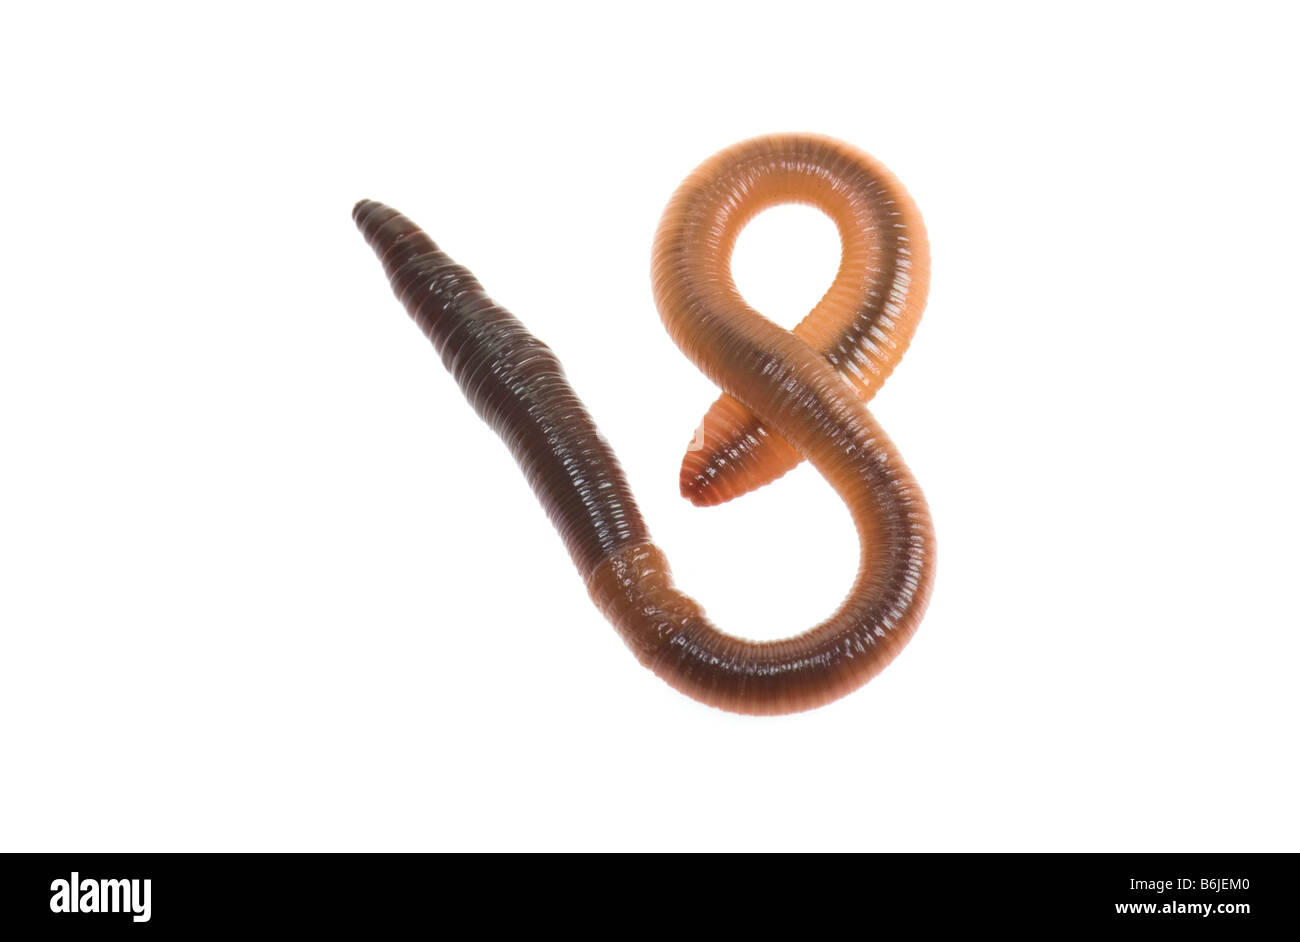 1 one big earthworm WORM wurm regenwurm on white background cutout cut out earth ground many garden bait disgusting - Stock Image